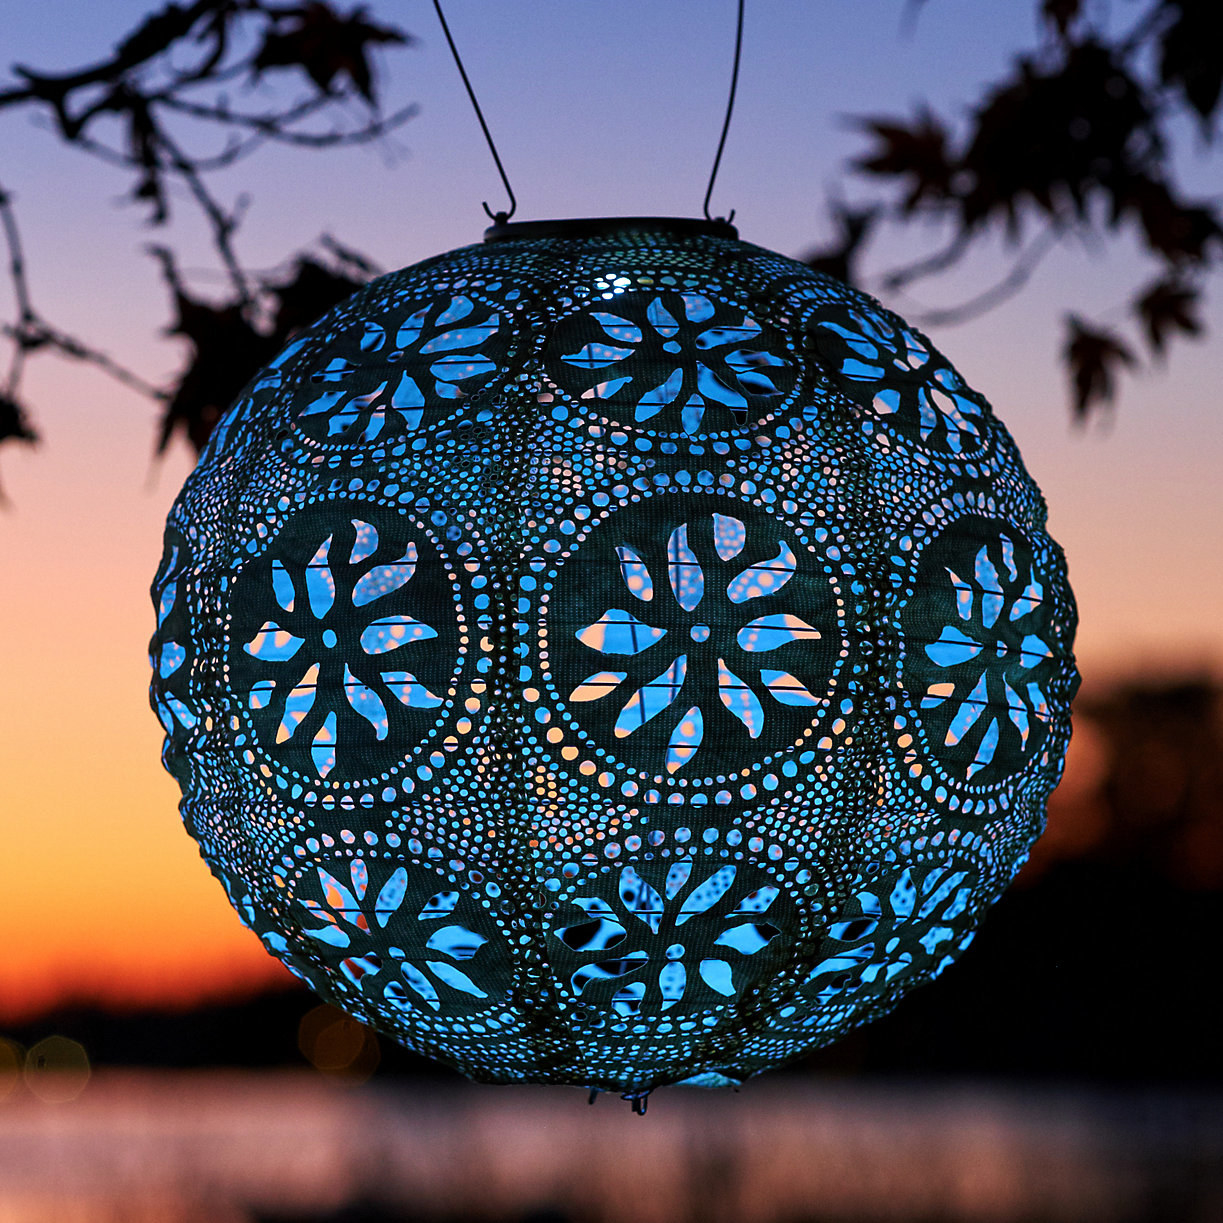 blue floral round lacy lantern hanging and illuminated